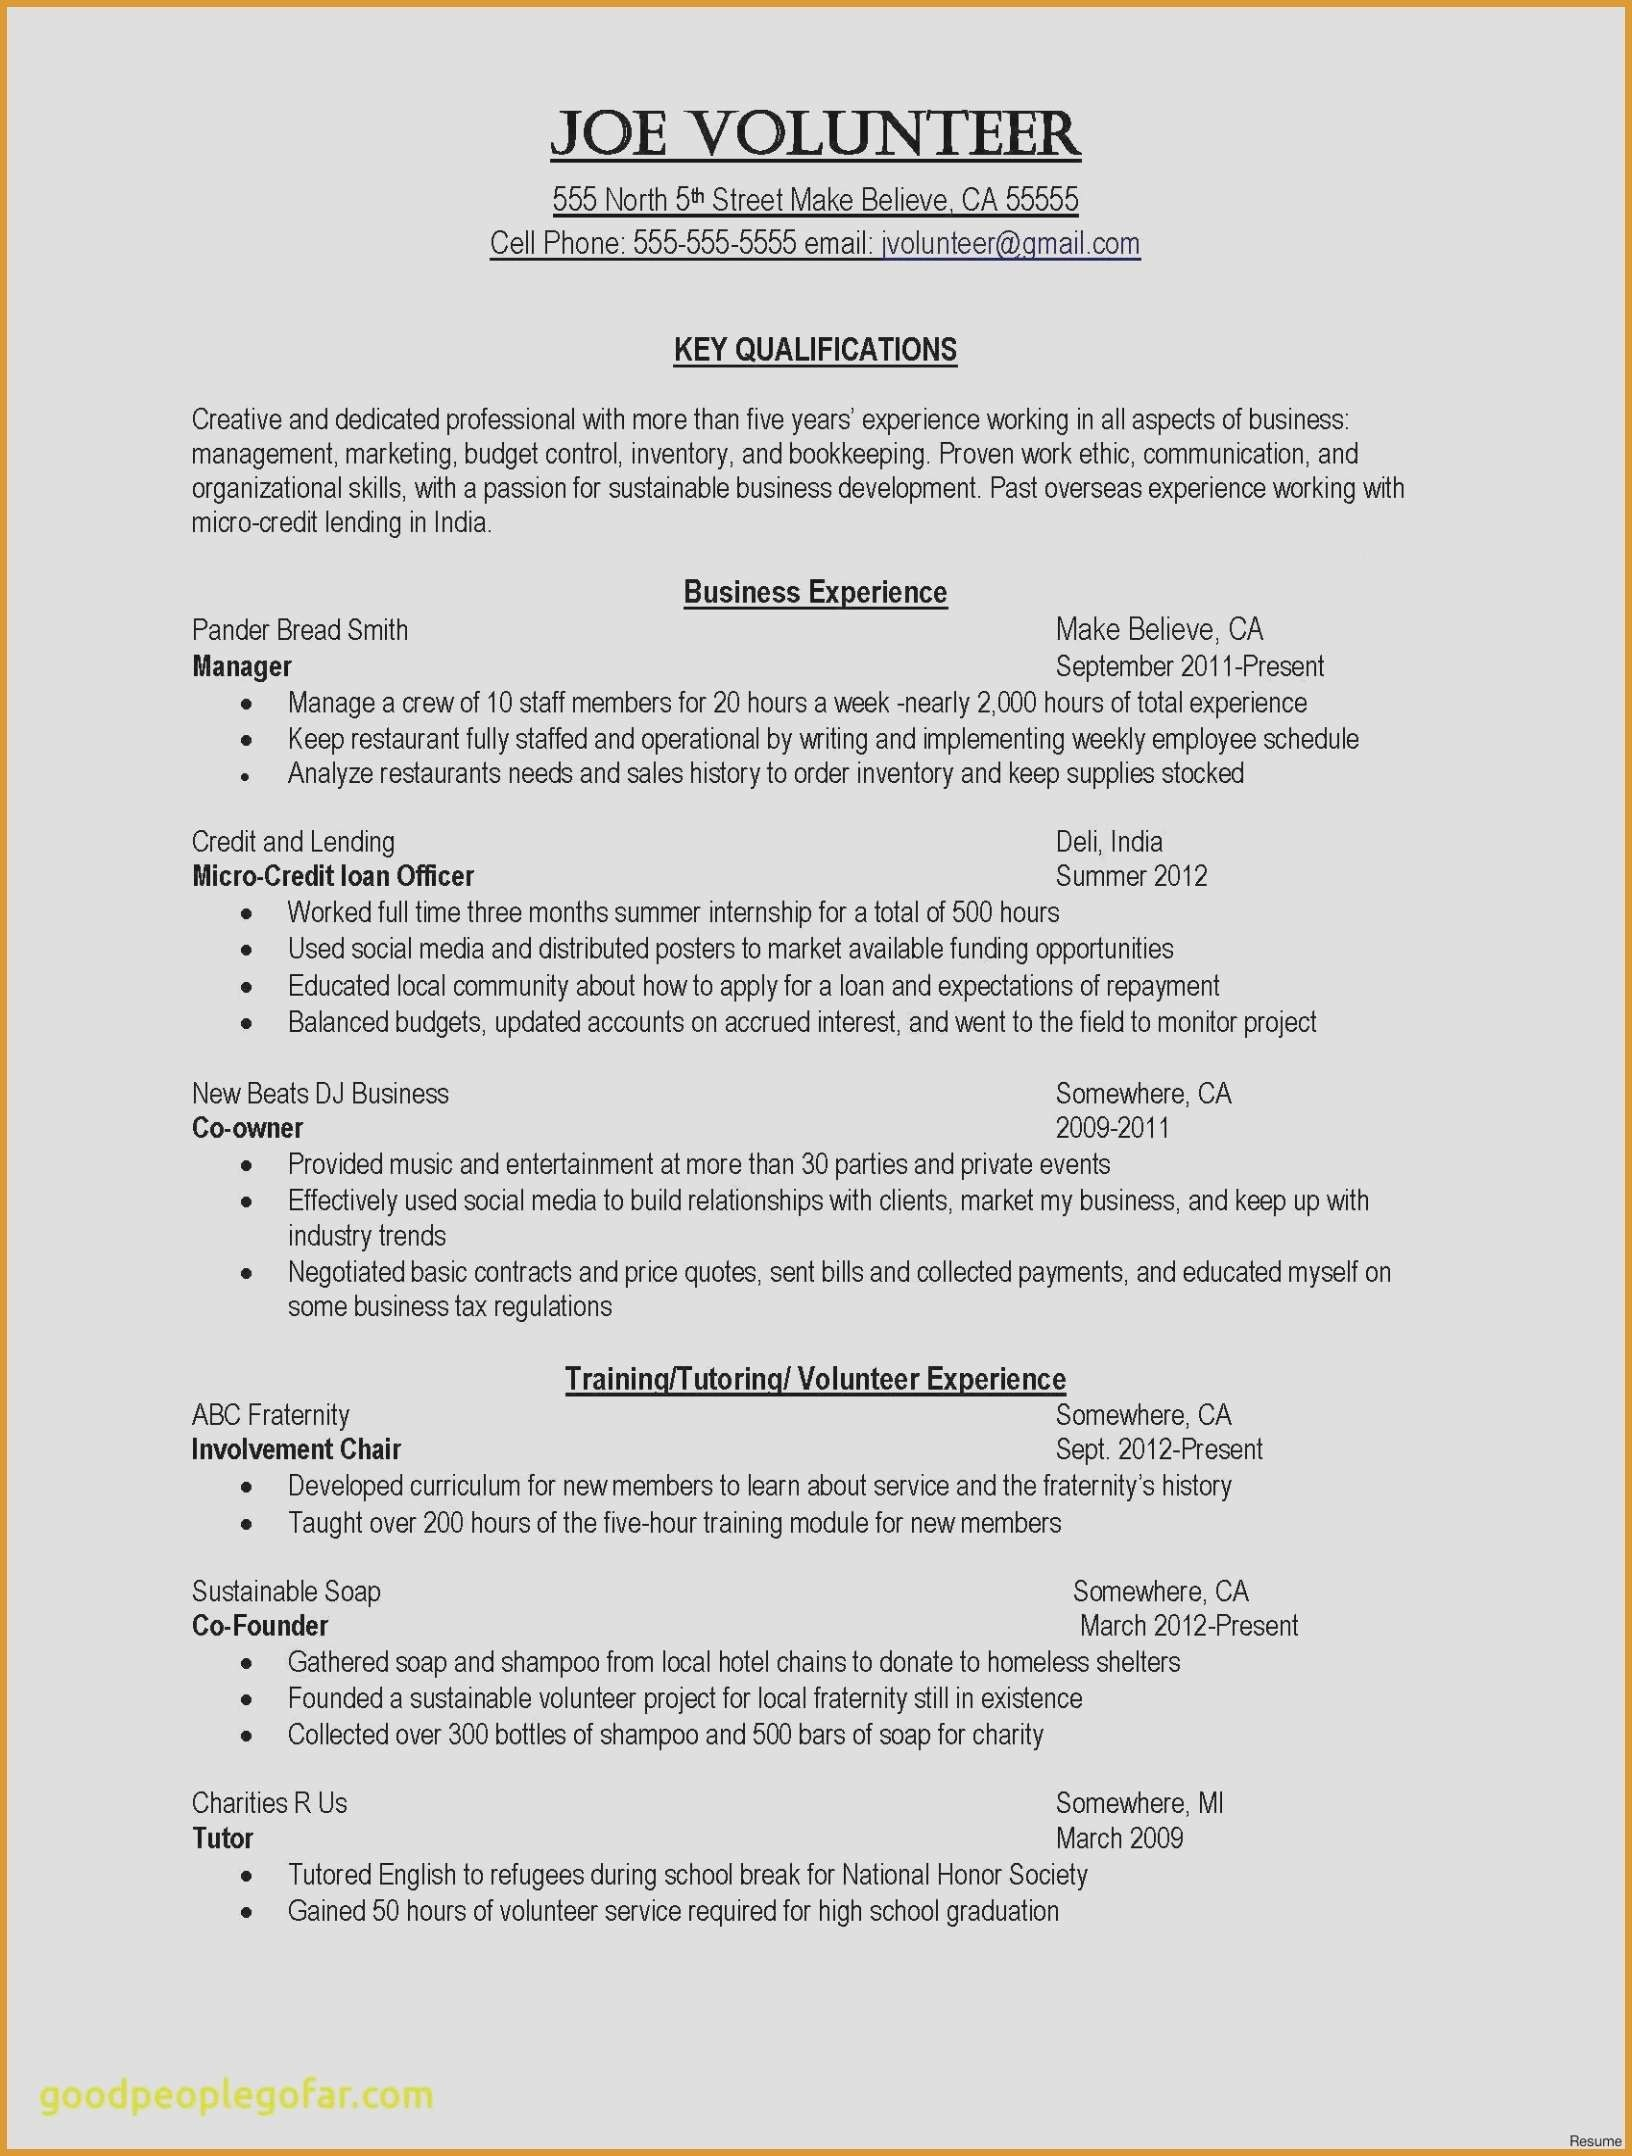 Bookkeeper Job Description for Resume - Sample First Job Resume New Resume First Job Fresh Fresh Examples